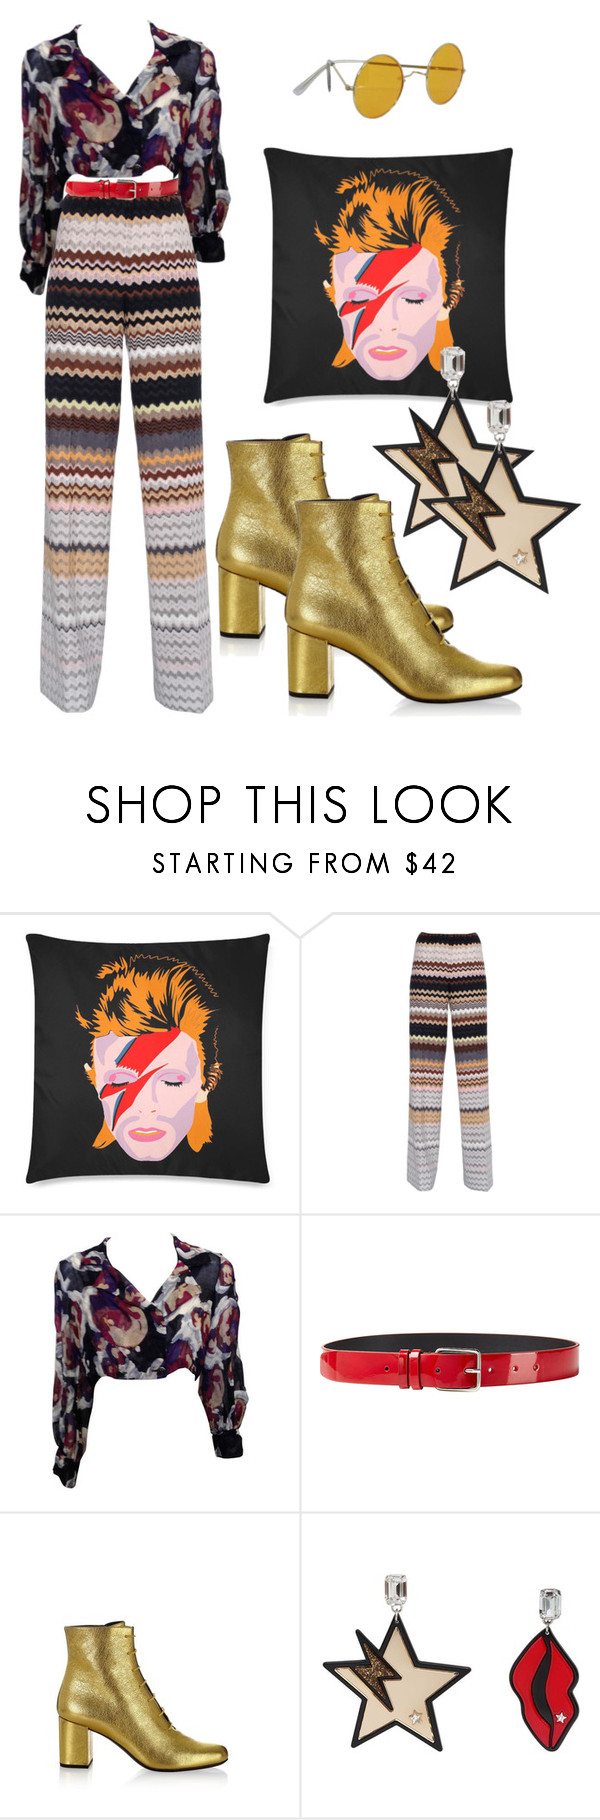 """""""Ziggy Stardust⚡️"""" by remsays ❤ liked on Polyvore featuring Missoni, Chanel, Jil Sander, Yves Saint Laurent and STELLA McCARTNEY"""